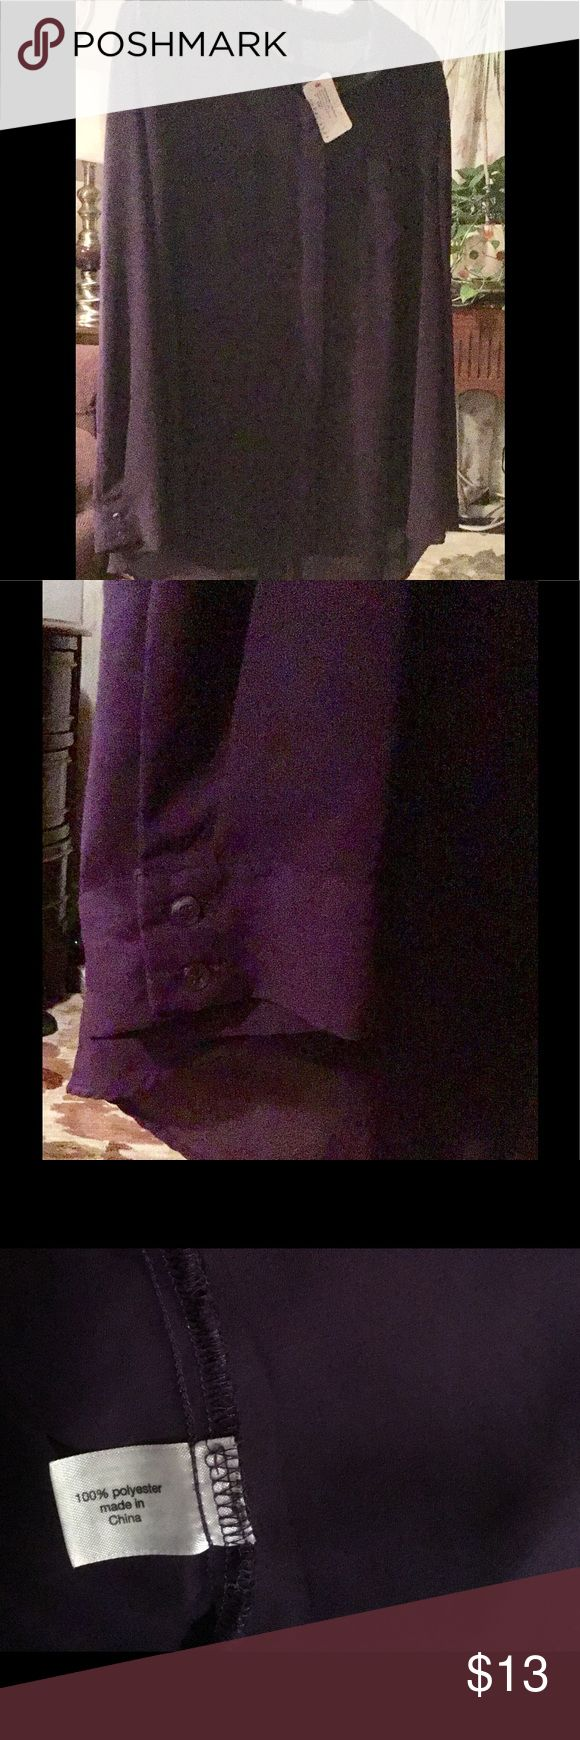 Purple Tunic style top Button down front and button cuffs. Shear with lining. 100 percent polyester.  The back of the shirt has a slit just like a pencil skirt  I tried to get a good picture.  Hard with dark colors.  Excellent condition. No stains. No rips.  Never worn. Tag attached. Lane Bryant Tops Tunics